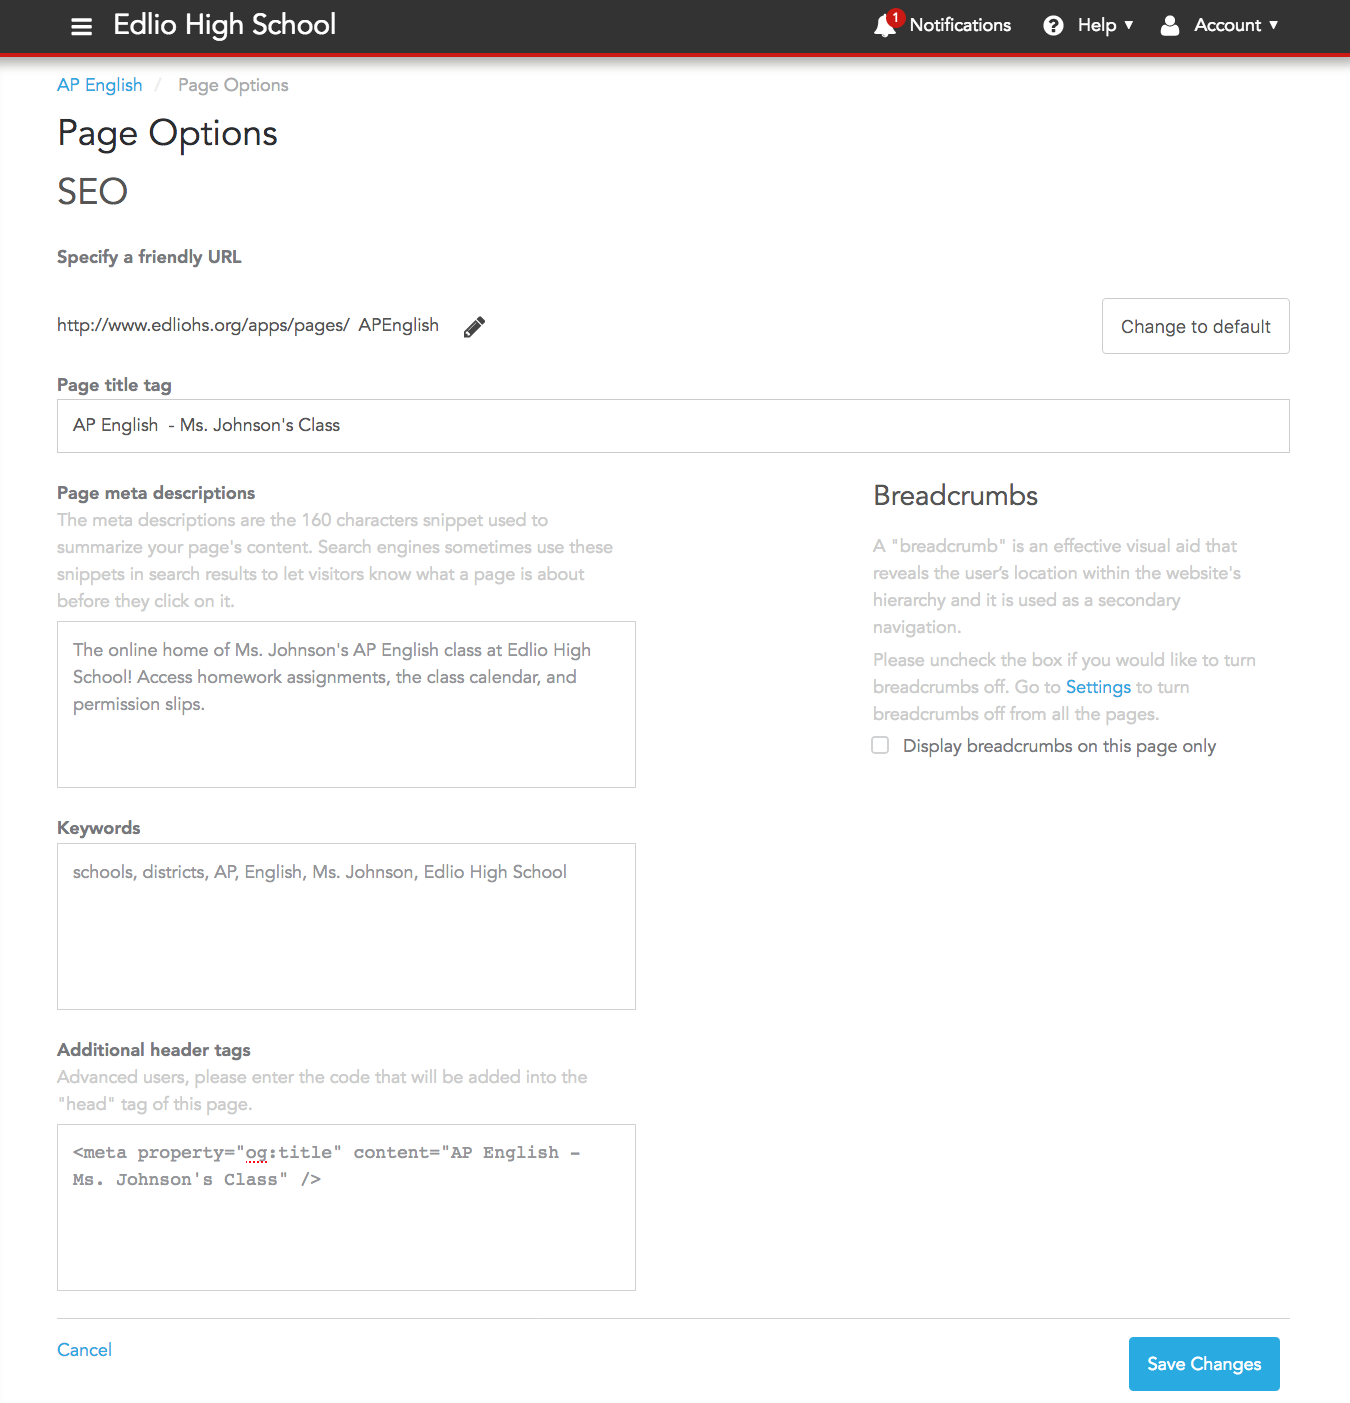 Page Options has many advanced features for the page